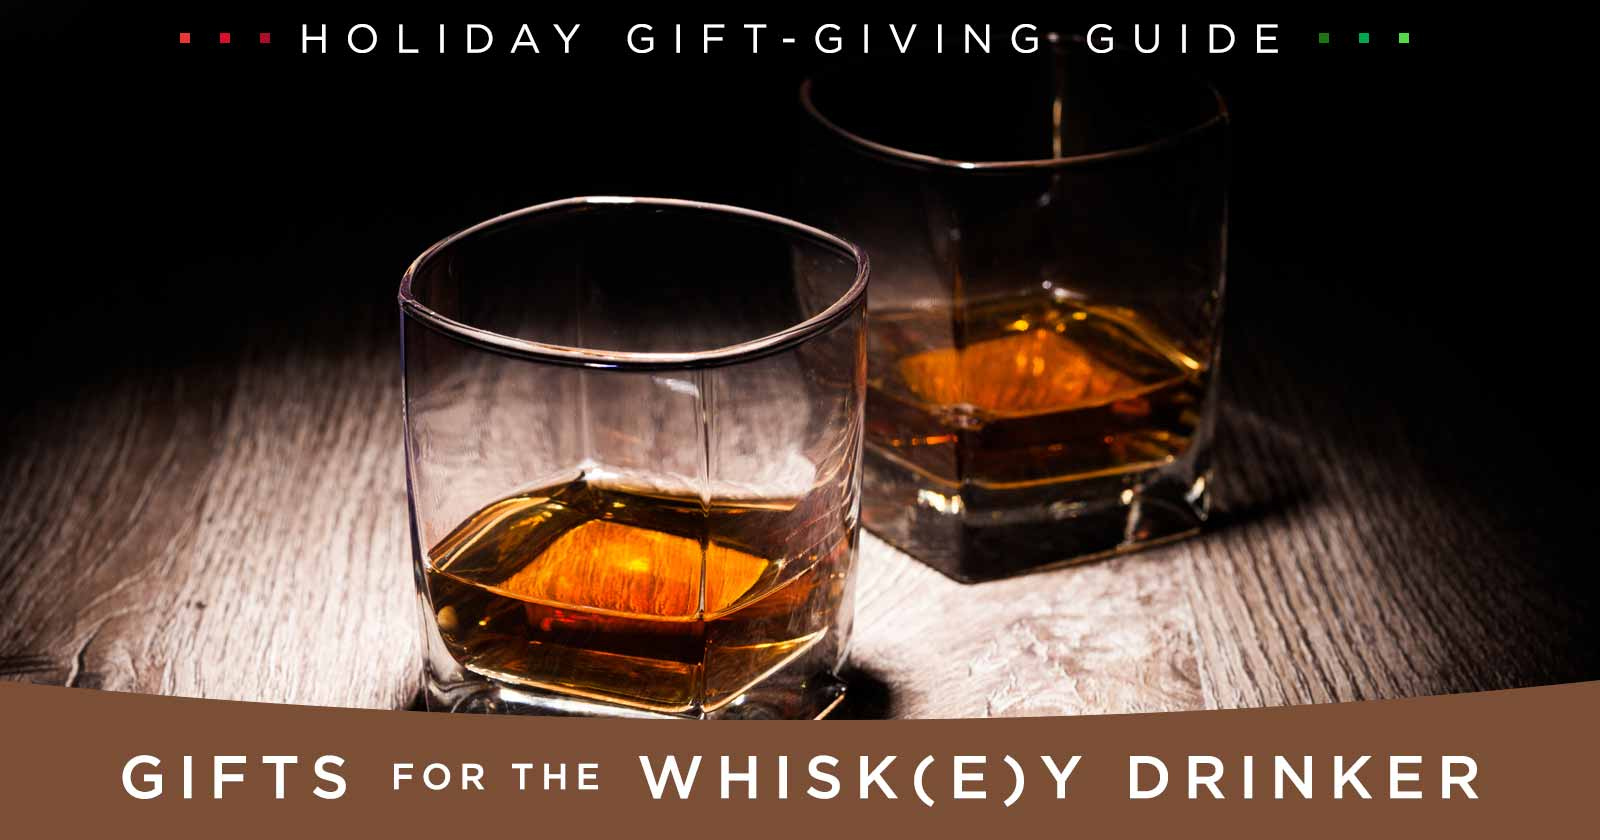 Gifts for the Whisk(e)y Drinker